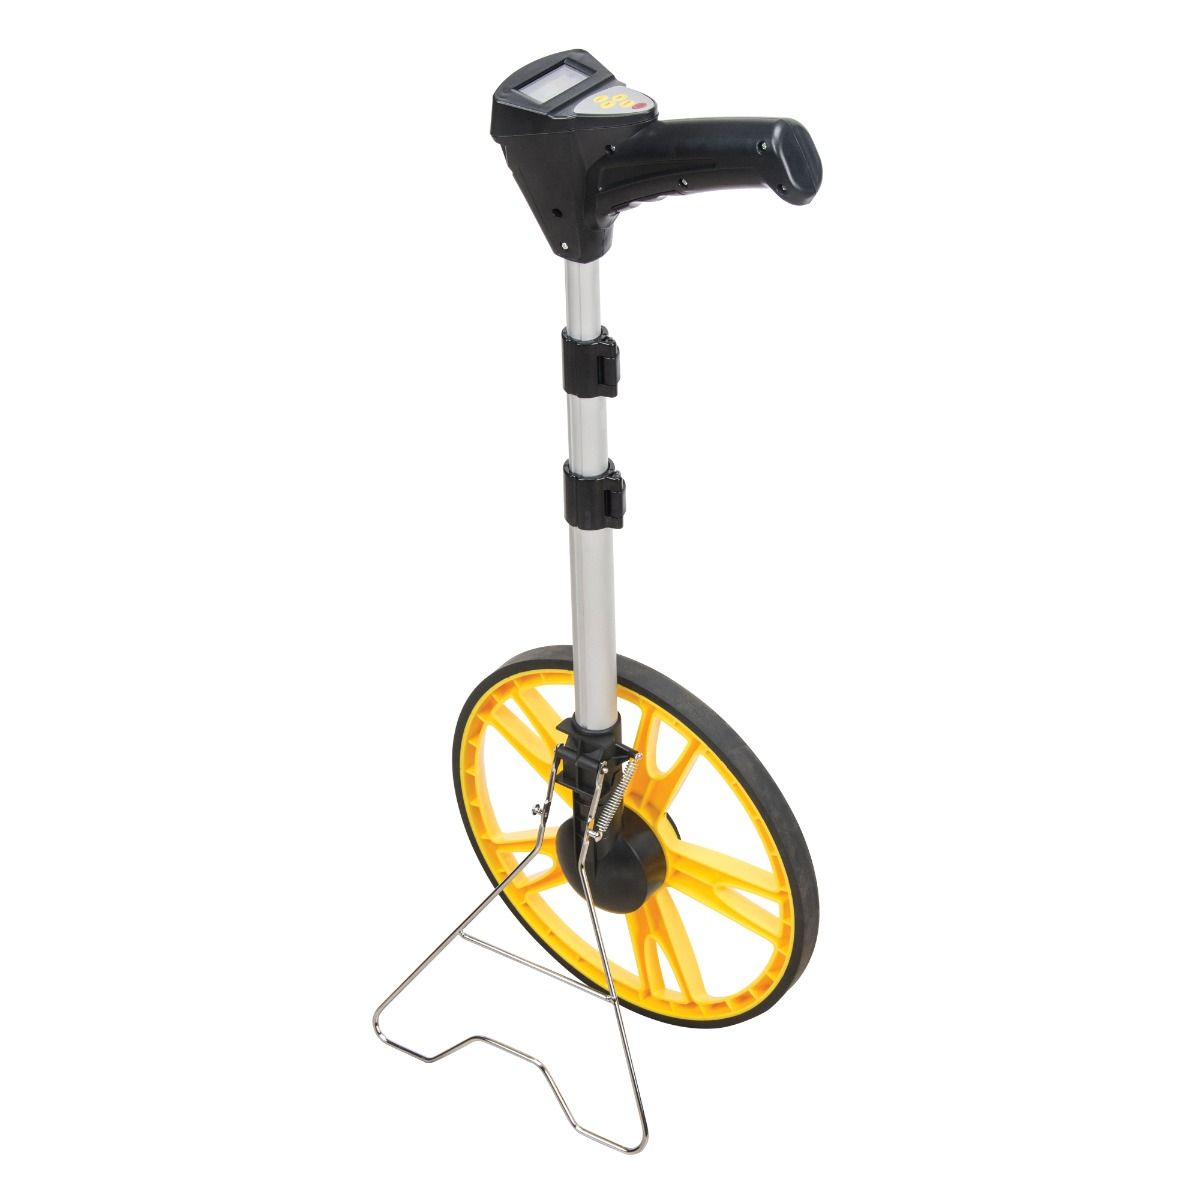 Measuring wheel - Large wheel model ensures accuracy and is ideal for uneven terrain